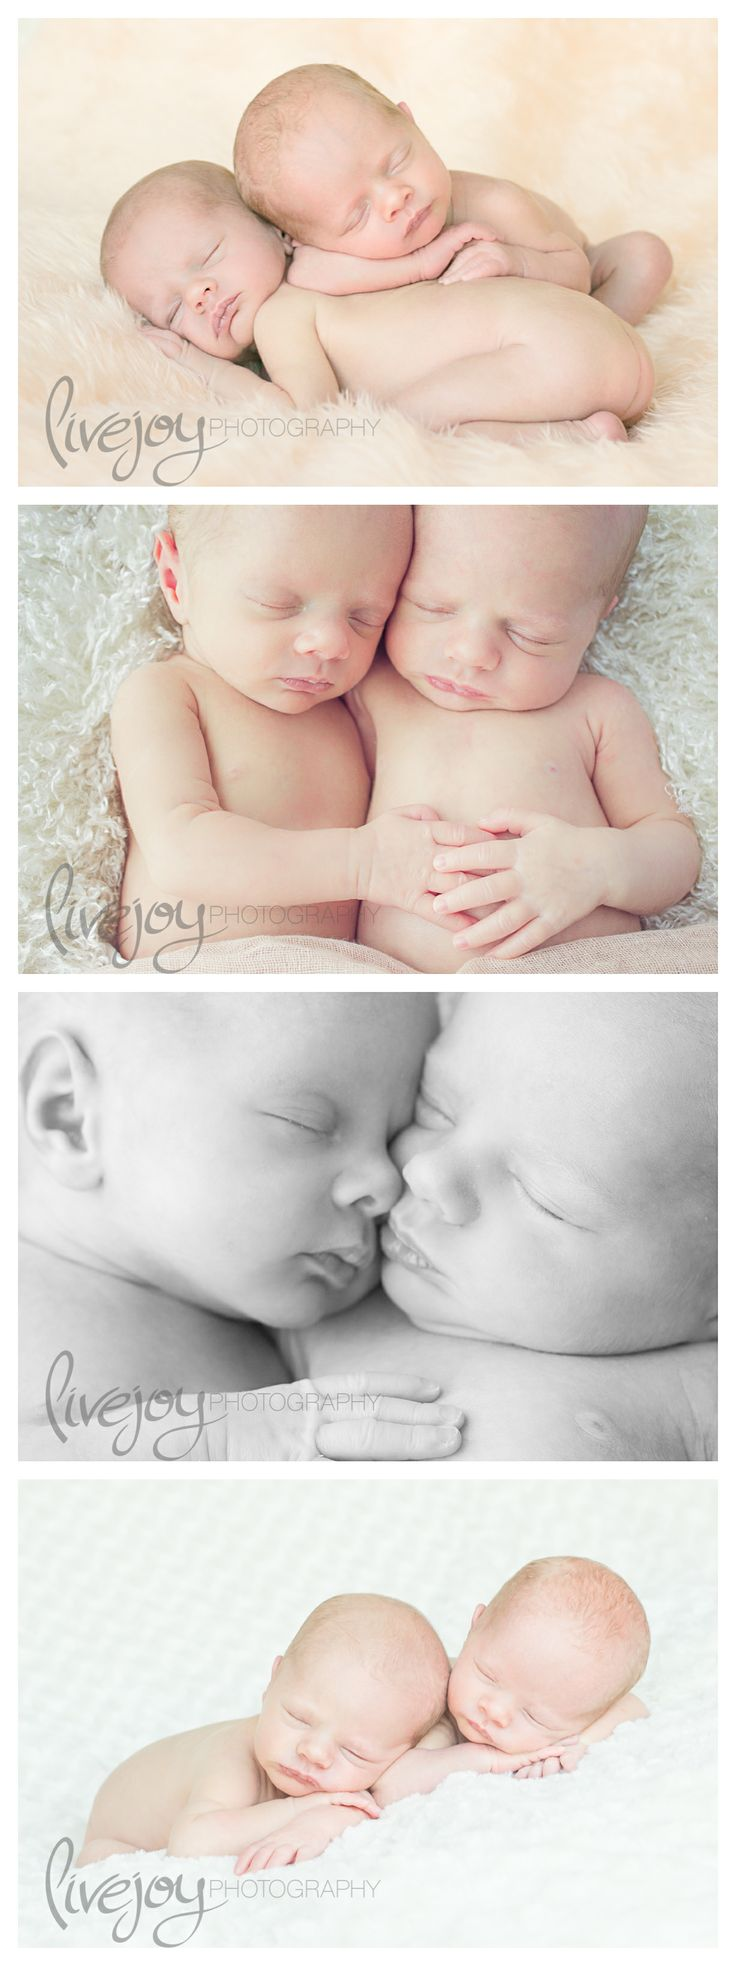 Twin Newborn Photography Session -- LiveJoy Photography #twins #Newborn #LiveJoyPhotography